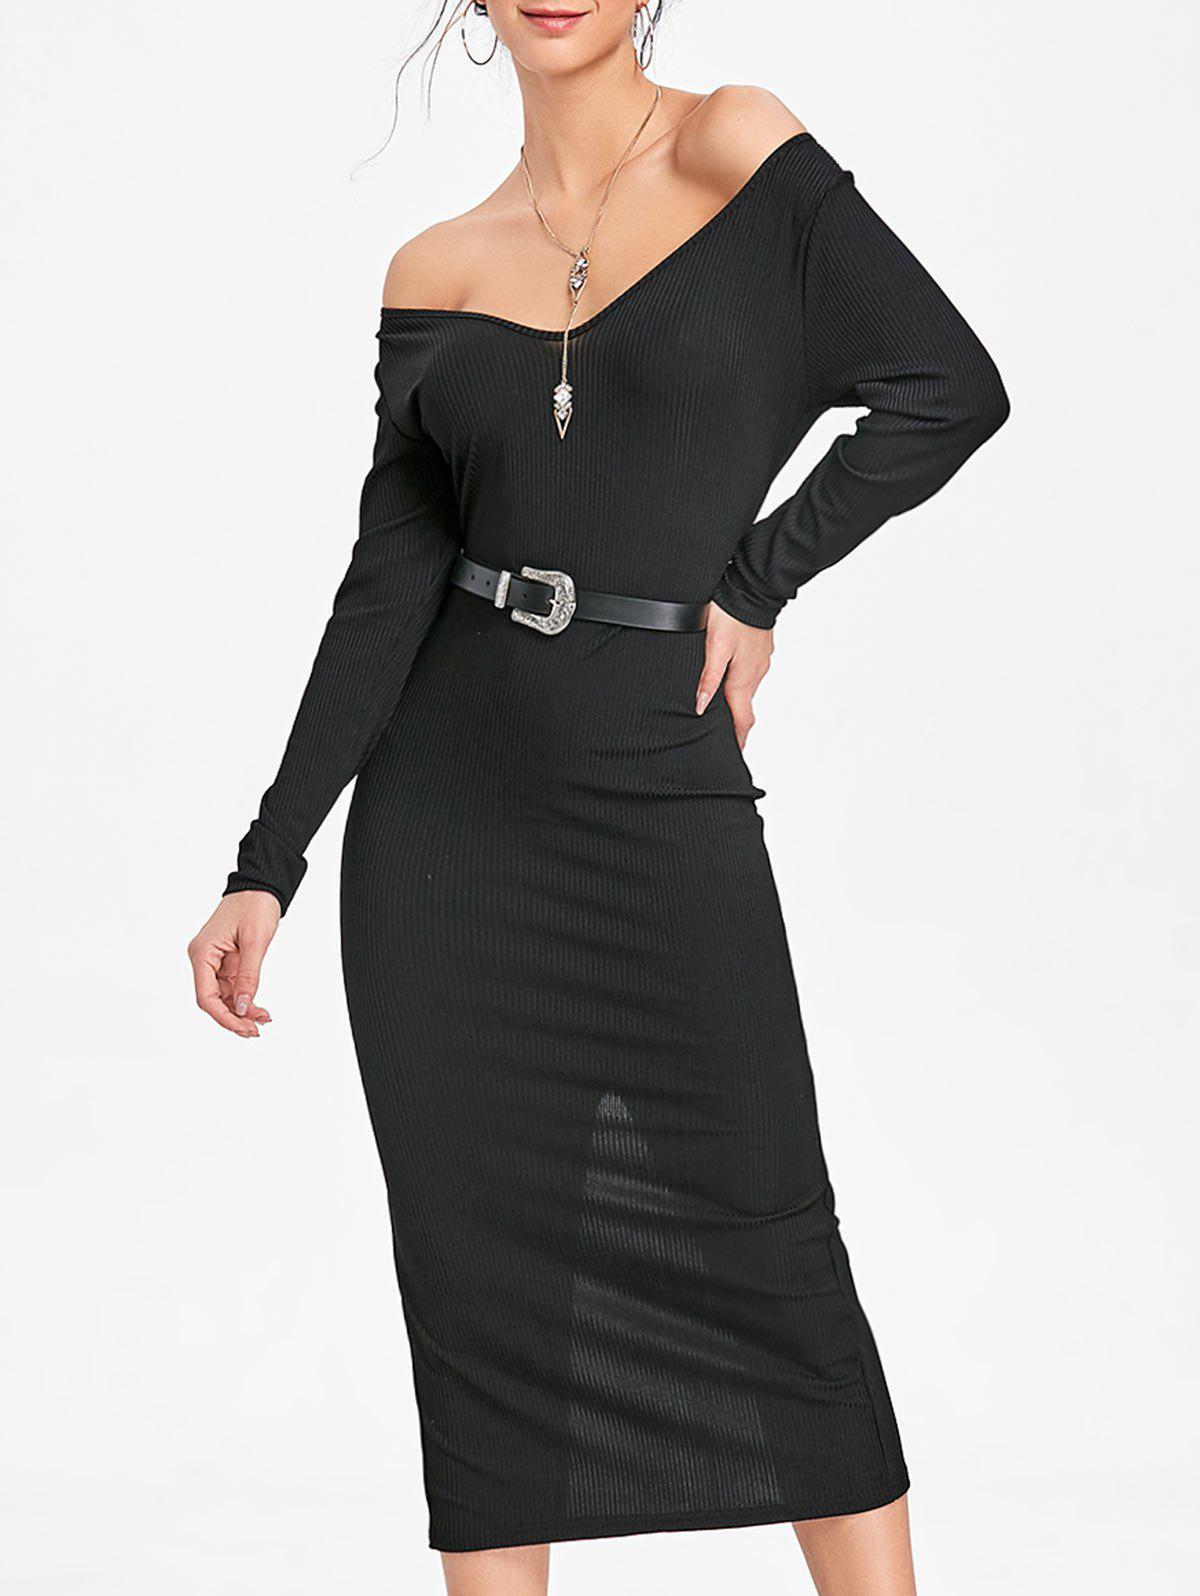 Open Shoulder Long Sleeve Ribbed Dress - BLACK S